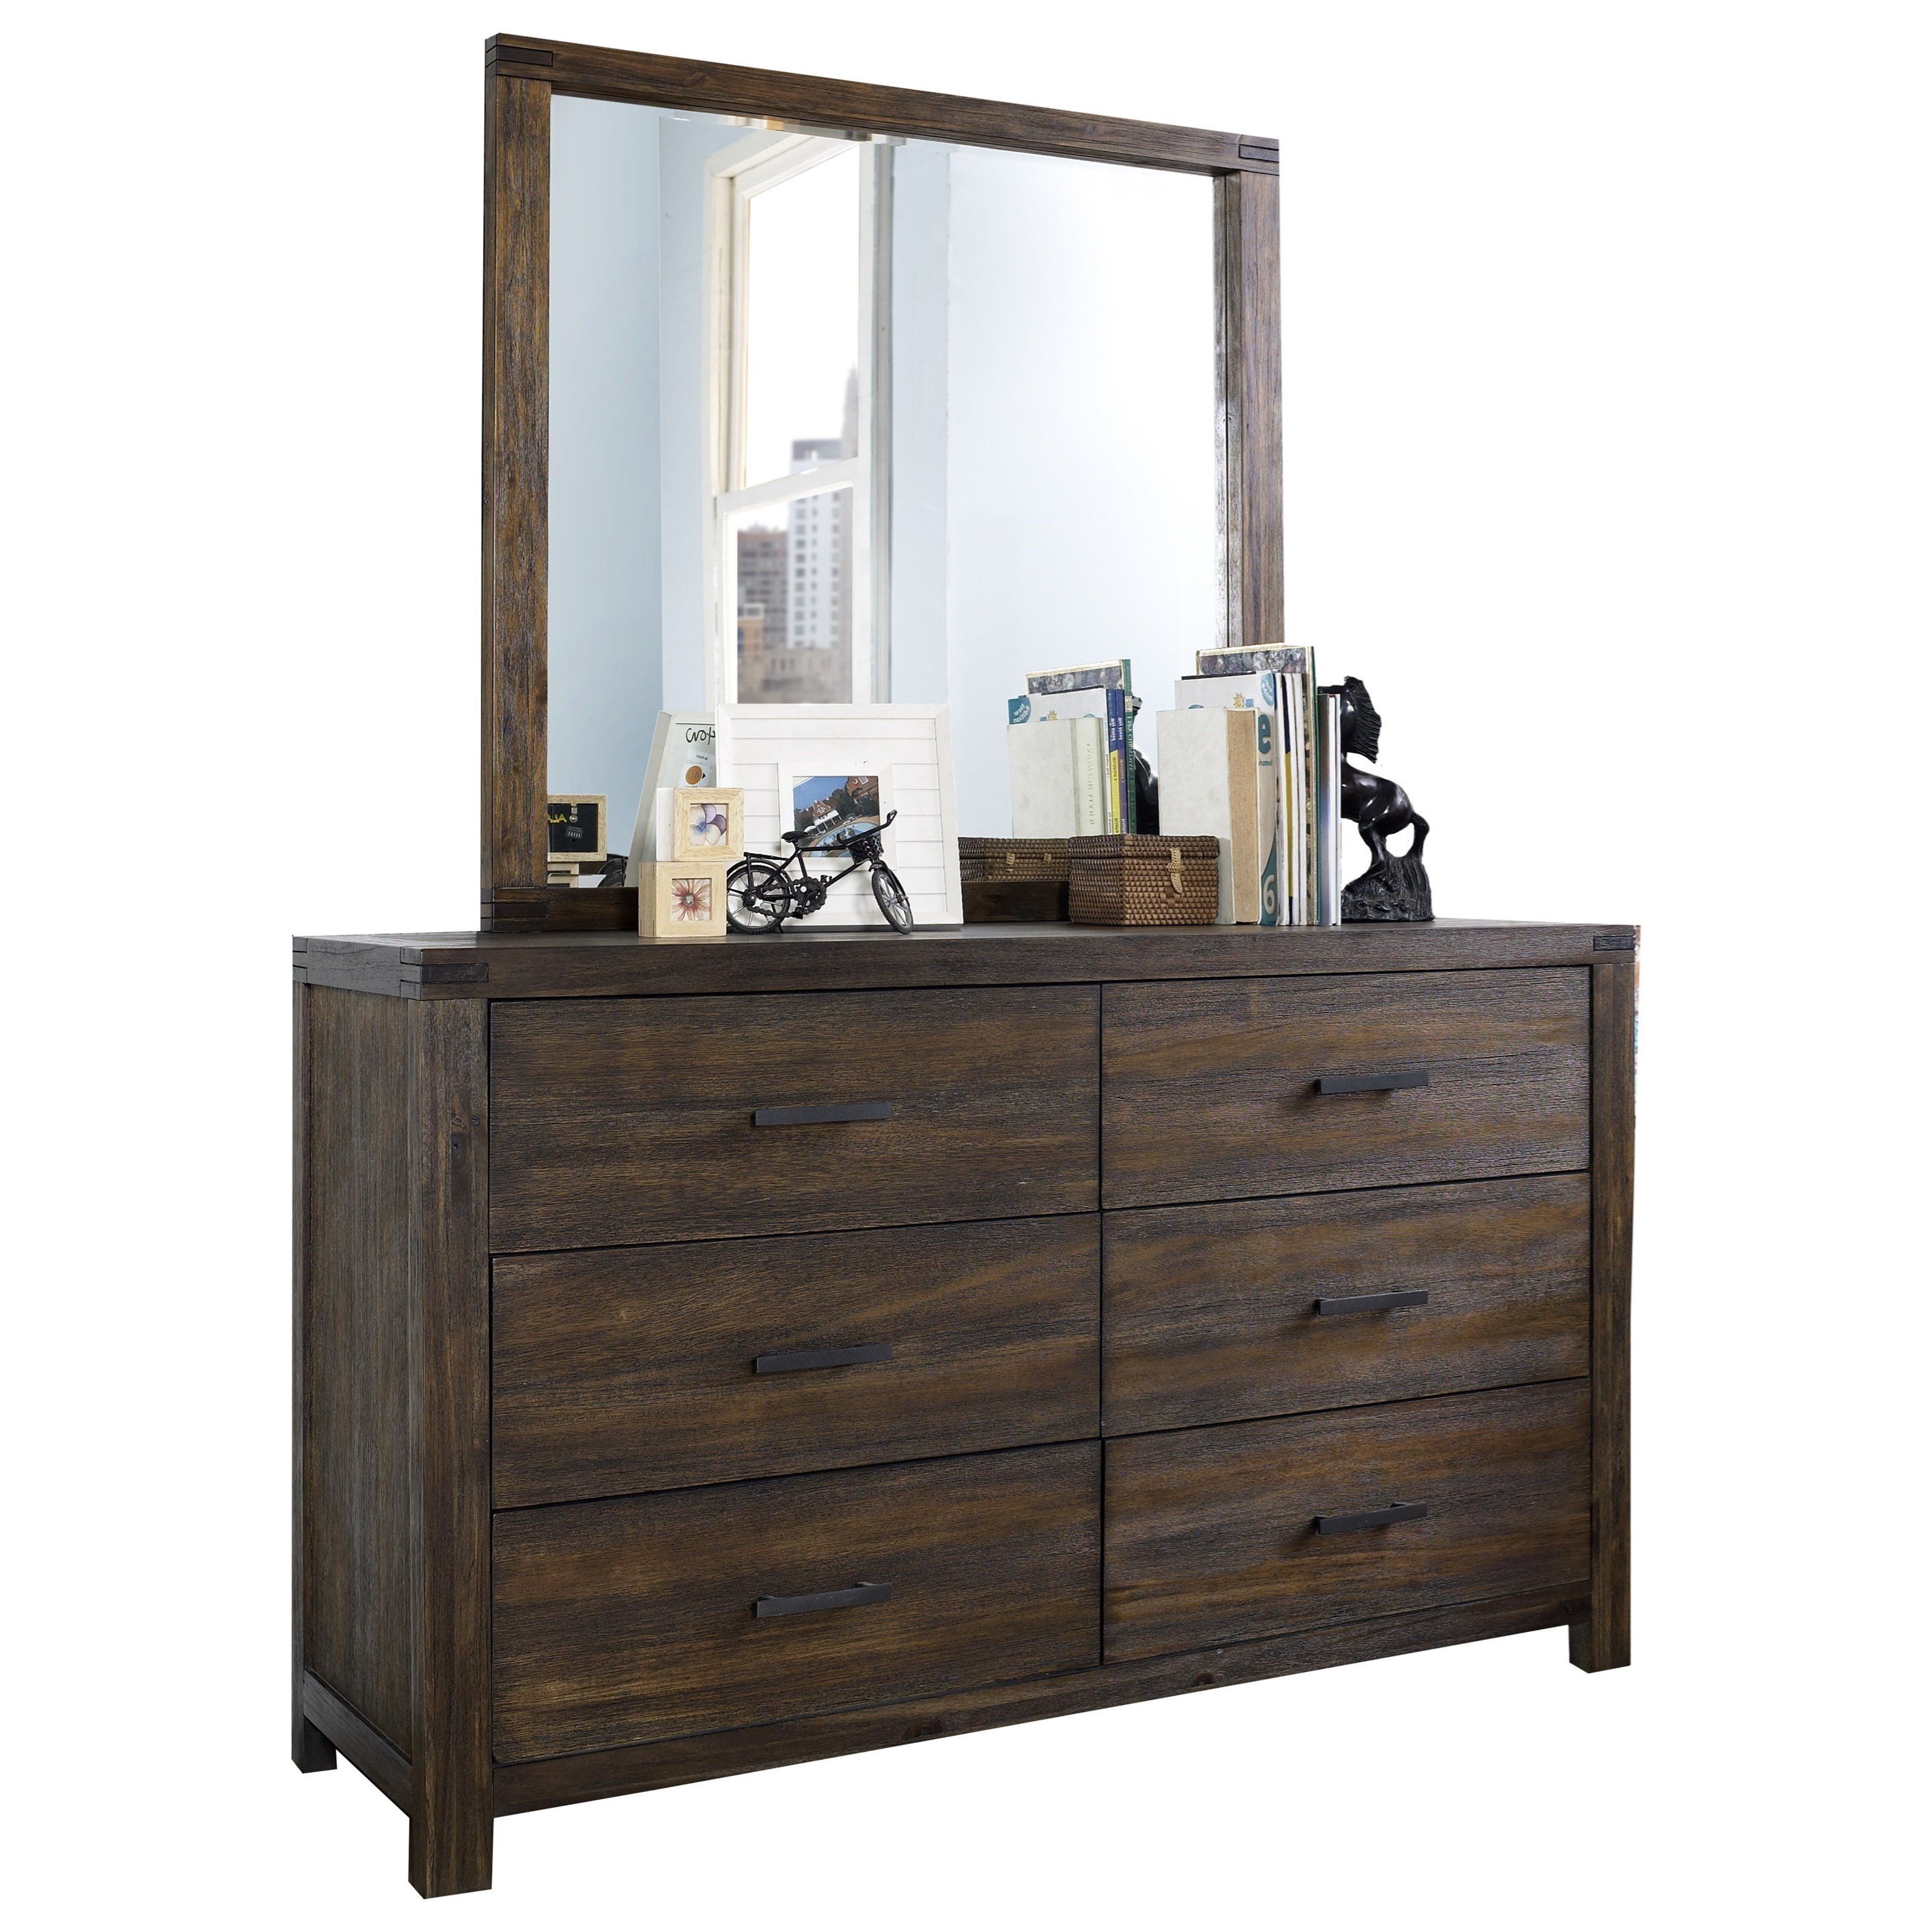 St. Croix Dresser and Mirror Set by Hillsdale at Darvin Furniture